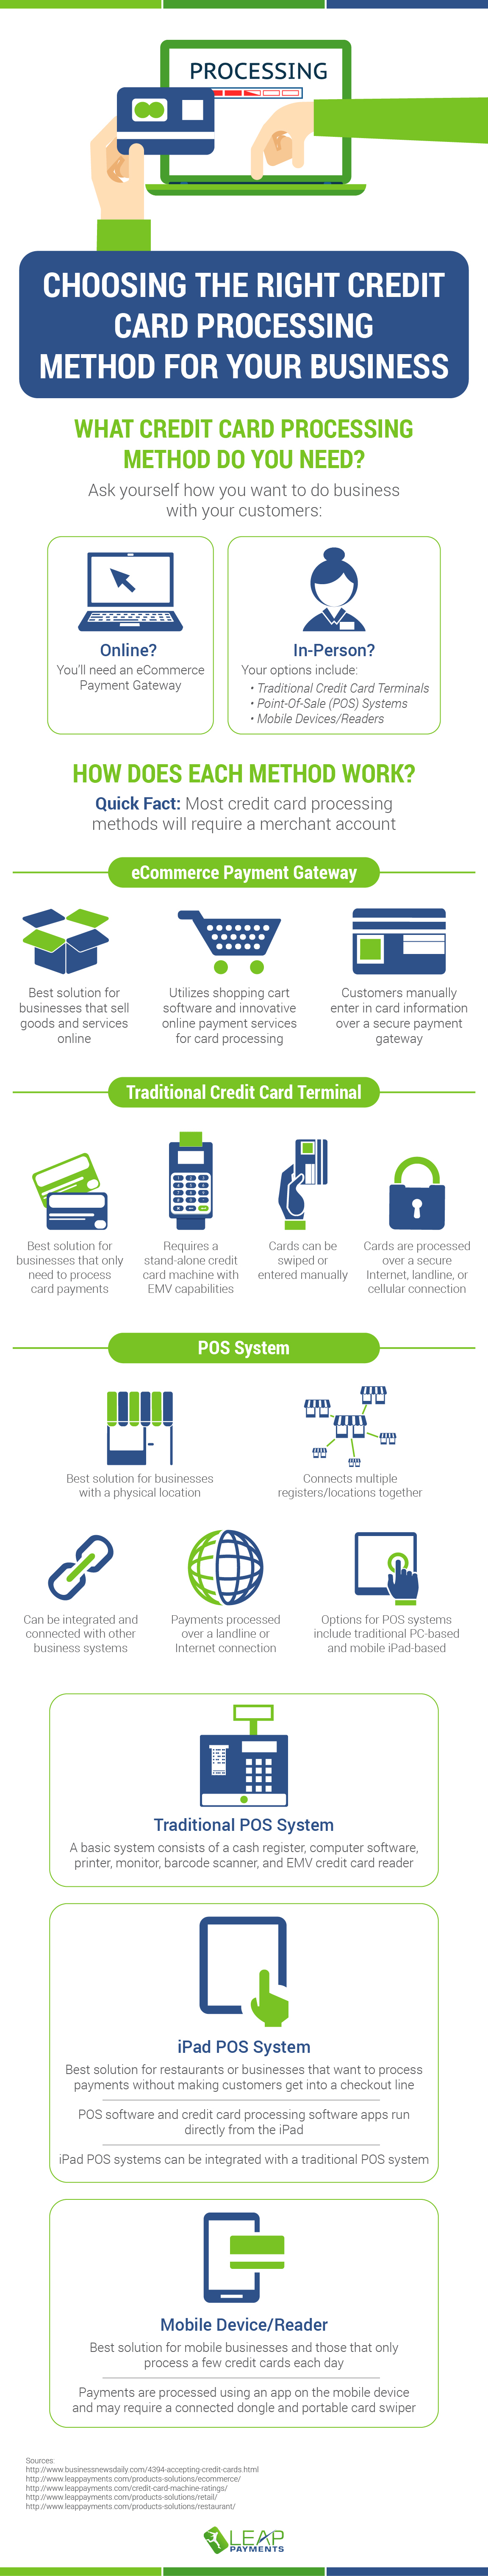 leap-payments-infographic-choose-the-best-credit-card-processor-may-2016.jpg